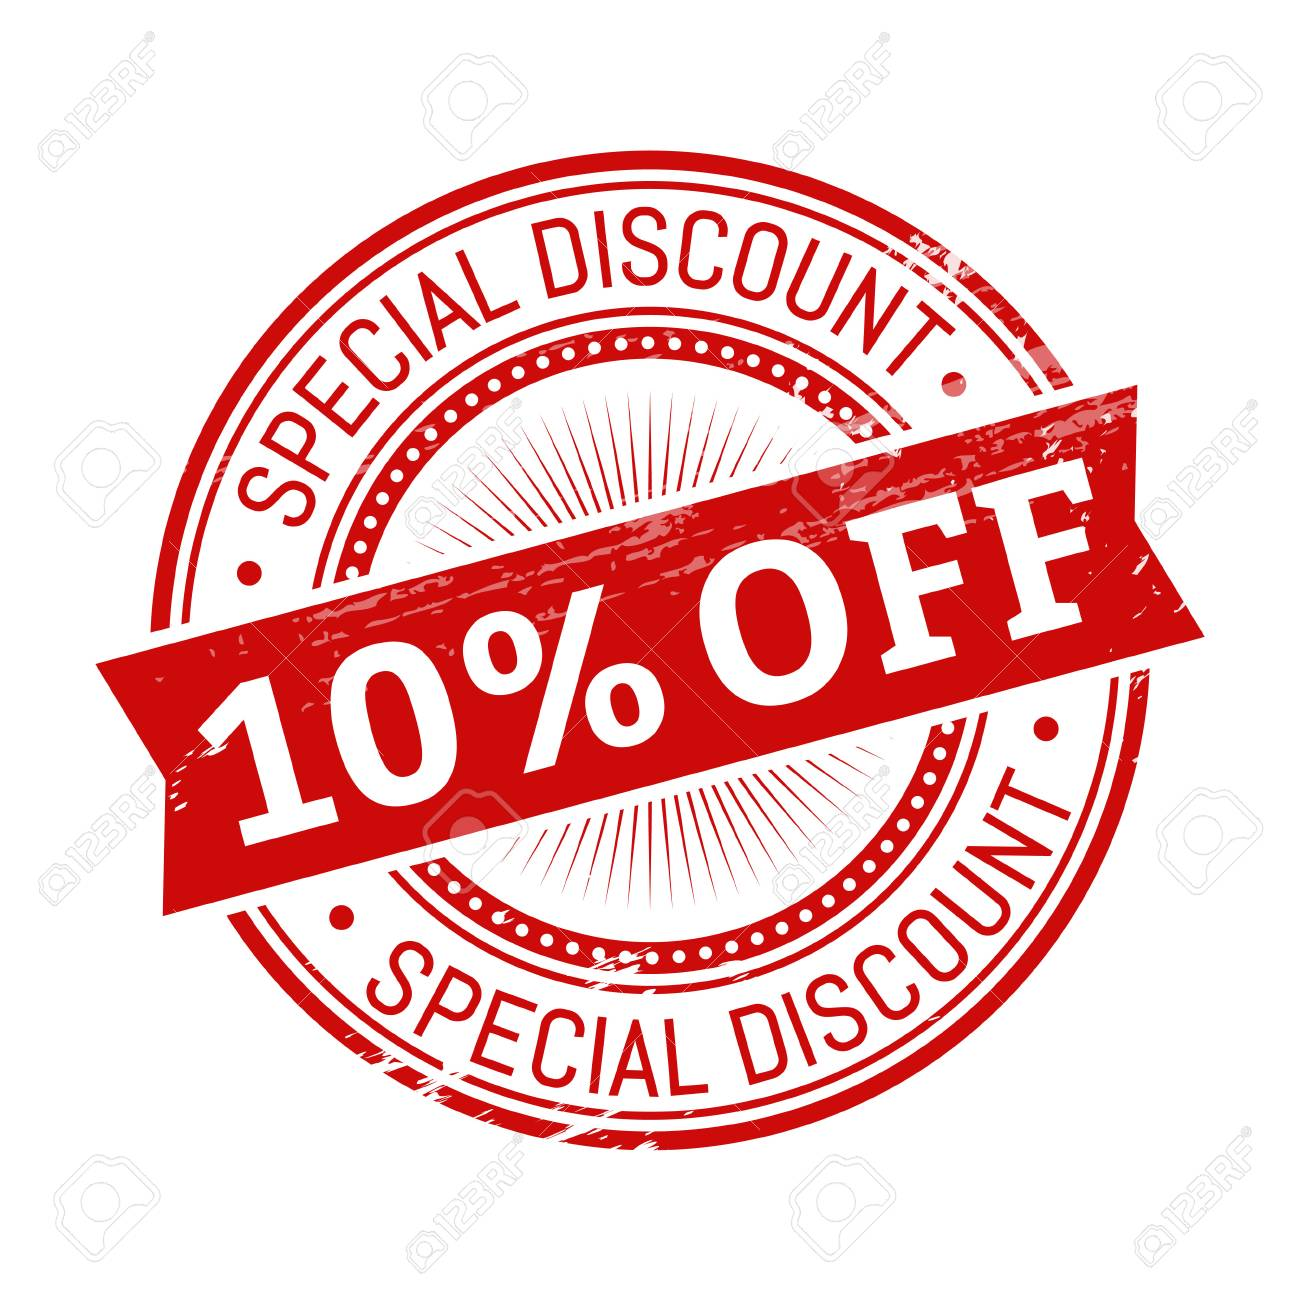 10 Percent Off Text, Red Color Round Stamper Illustration Royalty.